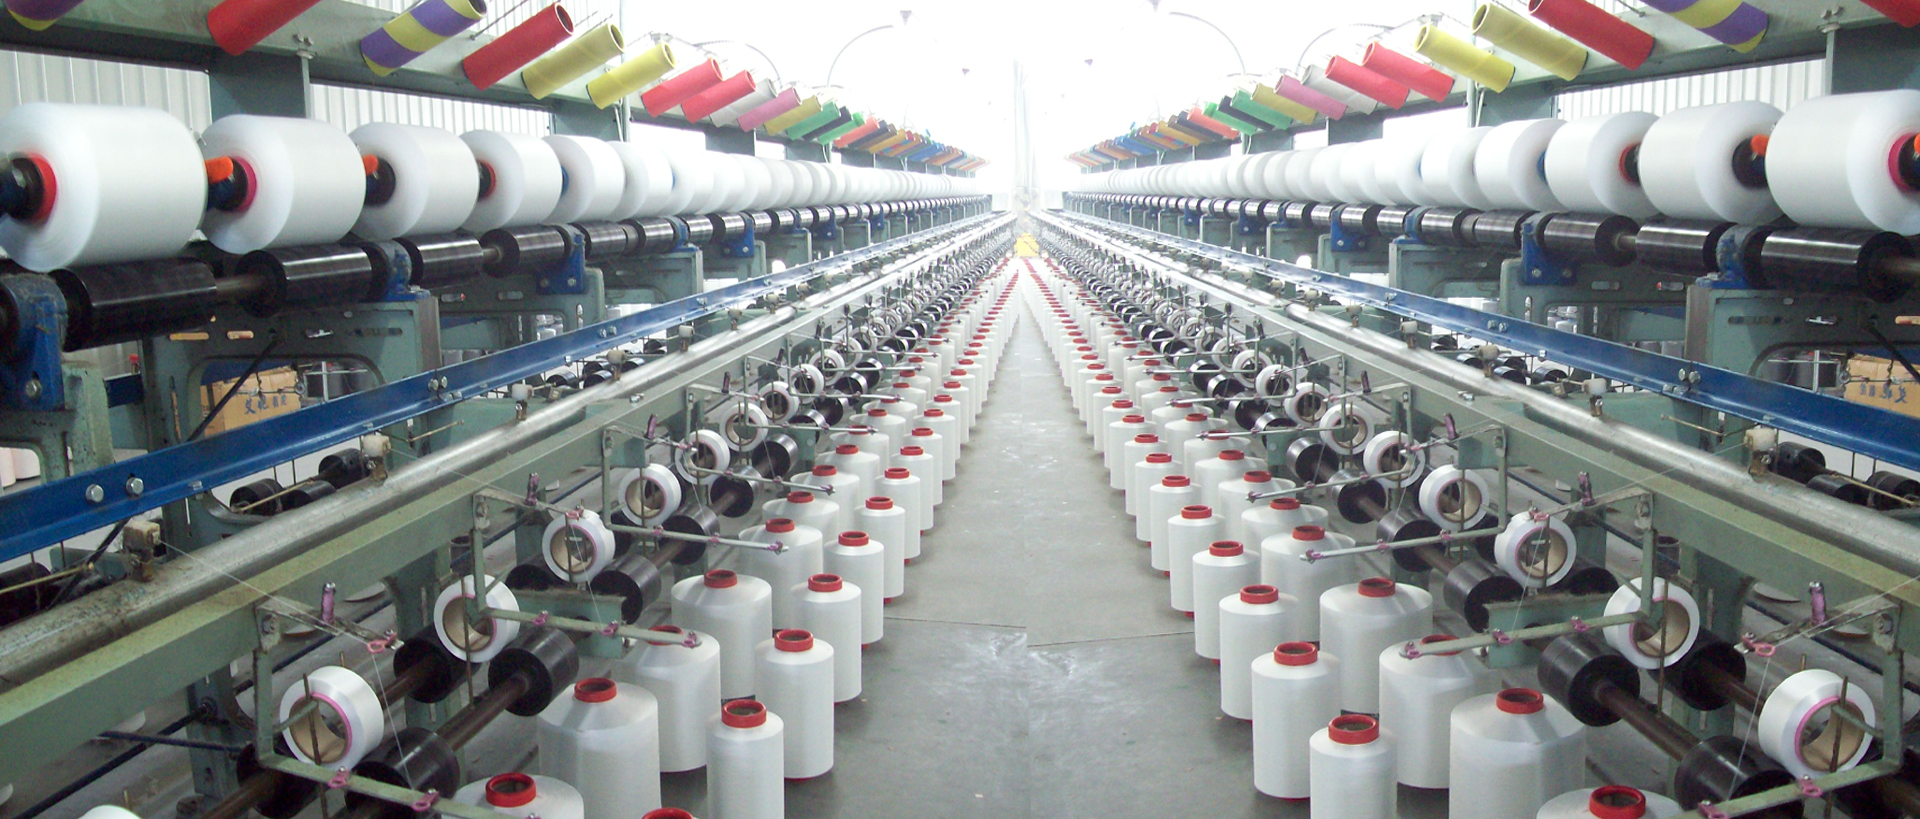 information about cotton textile industry Get information, facts, and pictures about textile industry at encyclopediacom make research projects and school reports about textile industry easy with credible articles from our free.